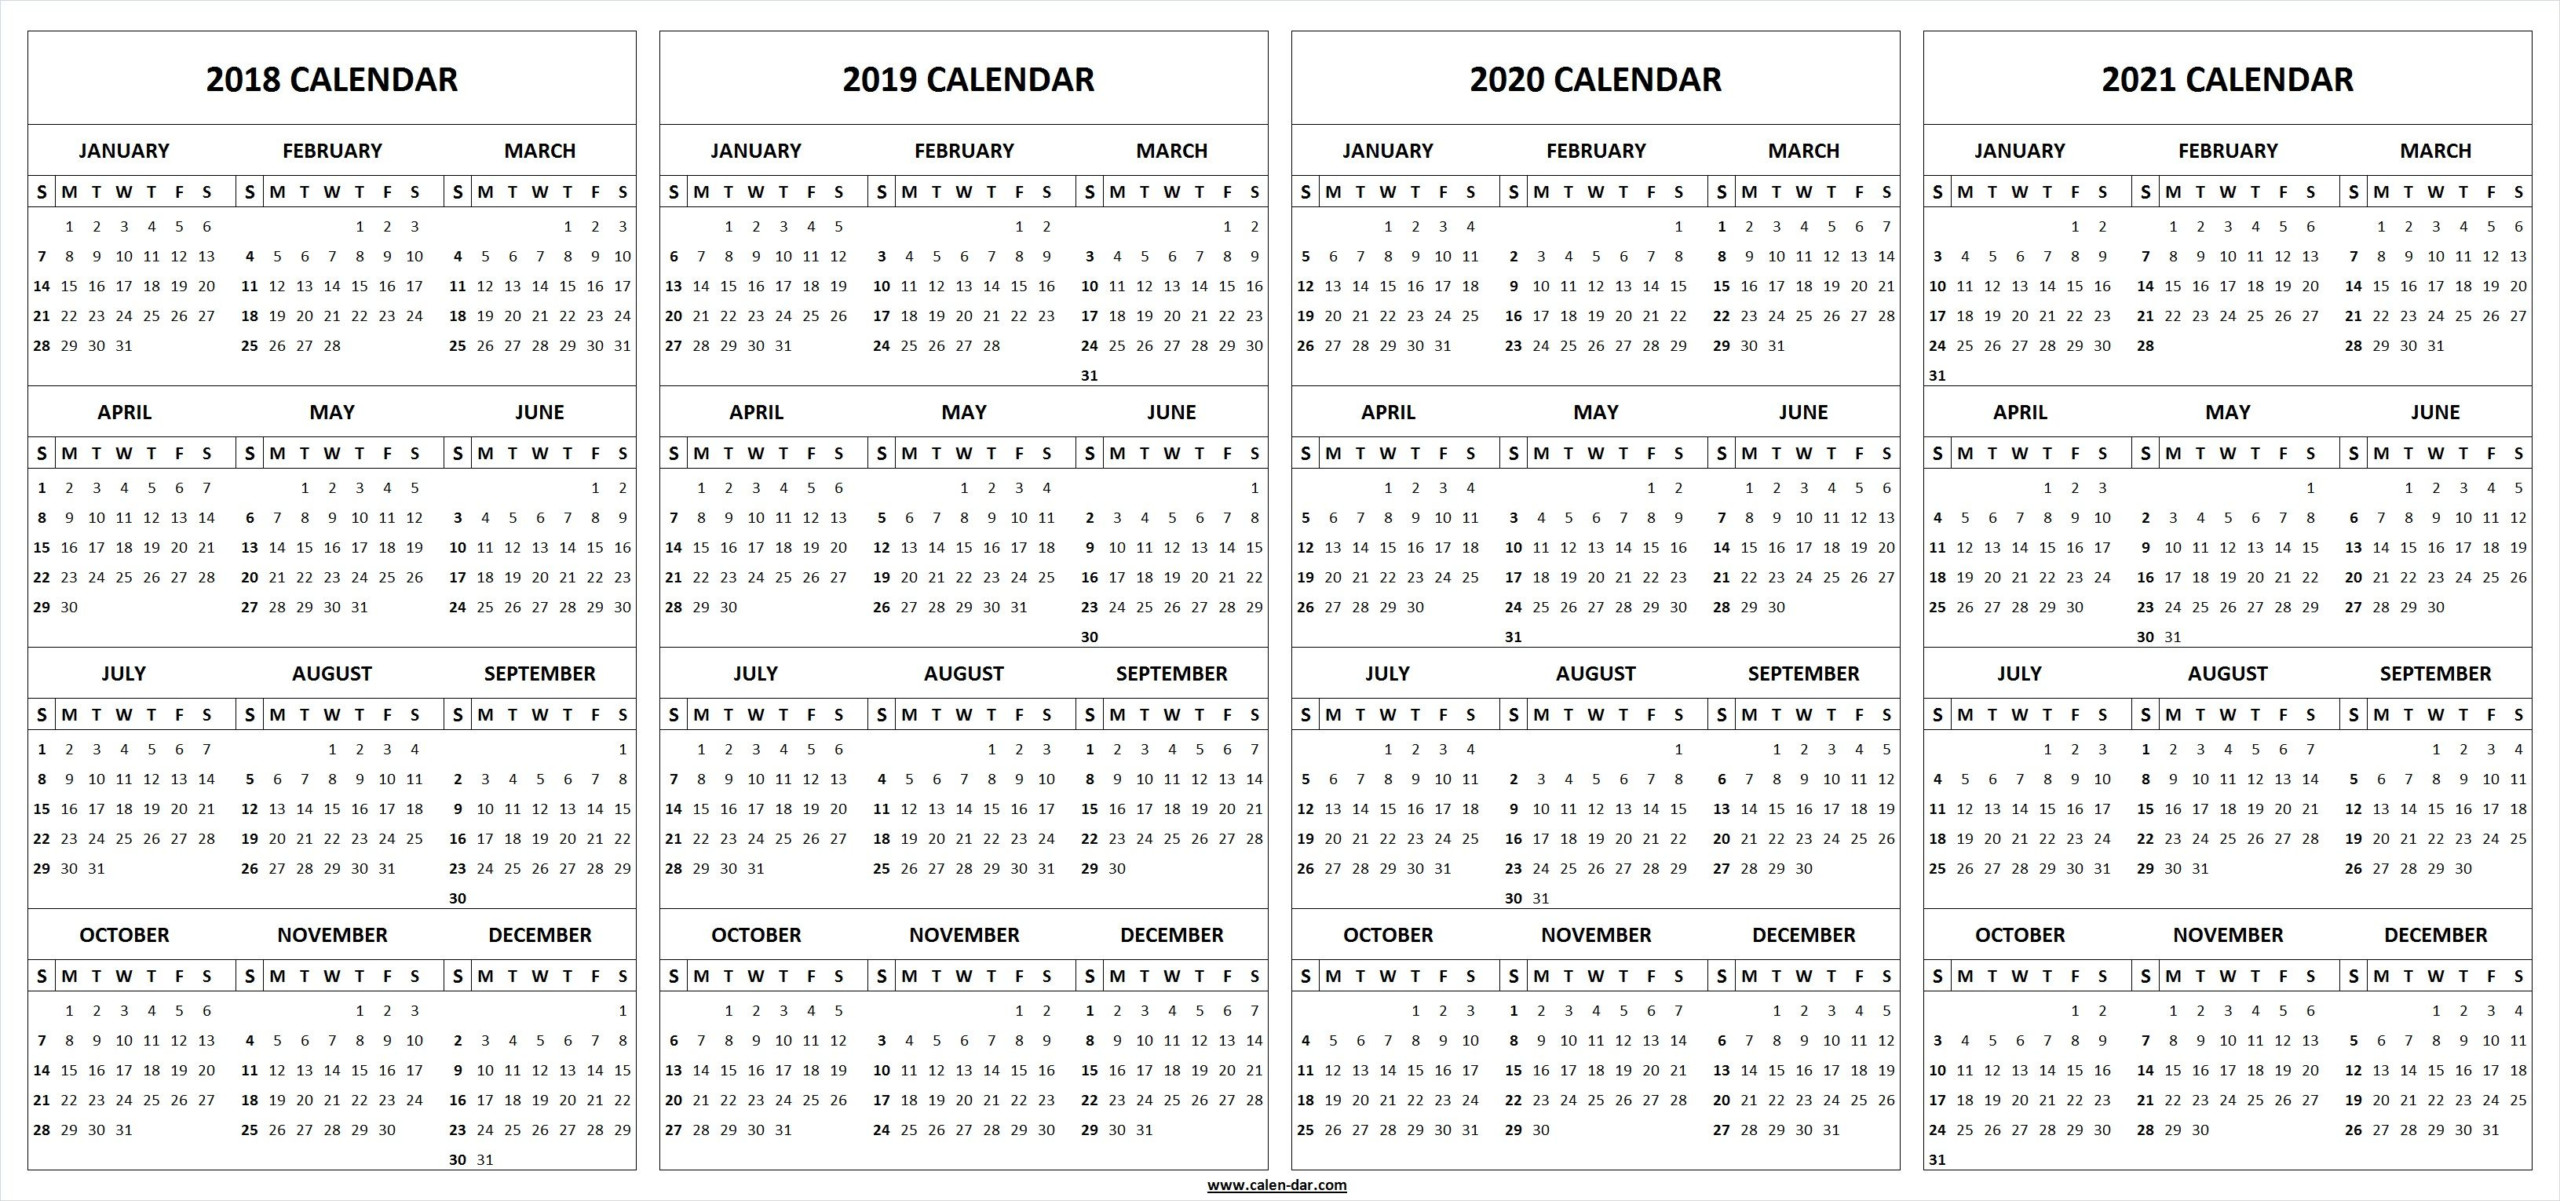 4 Four Year 2018 2019 2020 2021 Calendar Printable Template